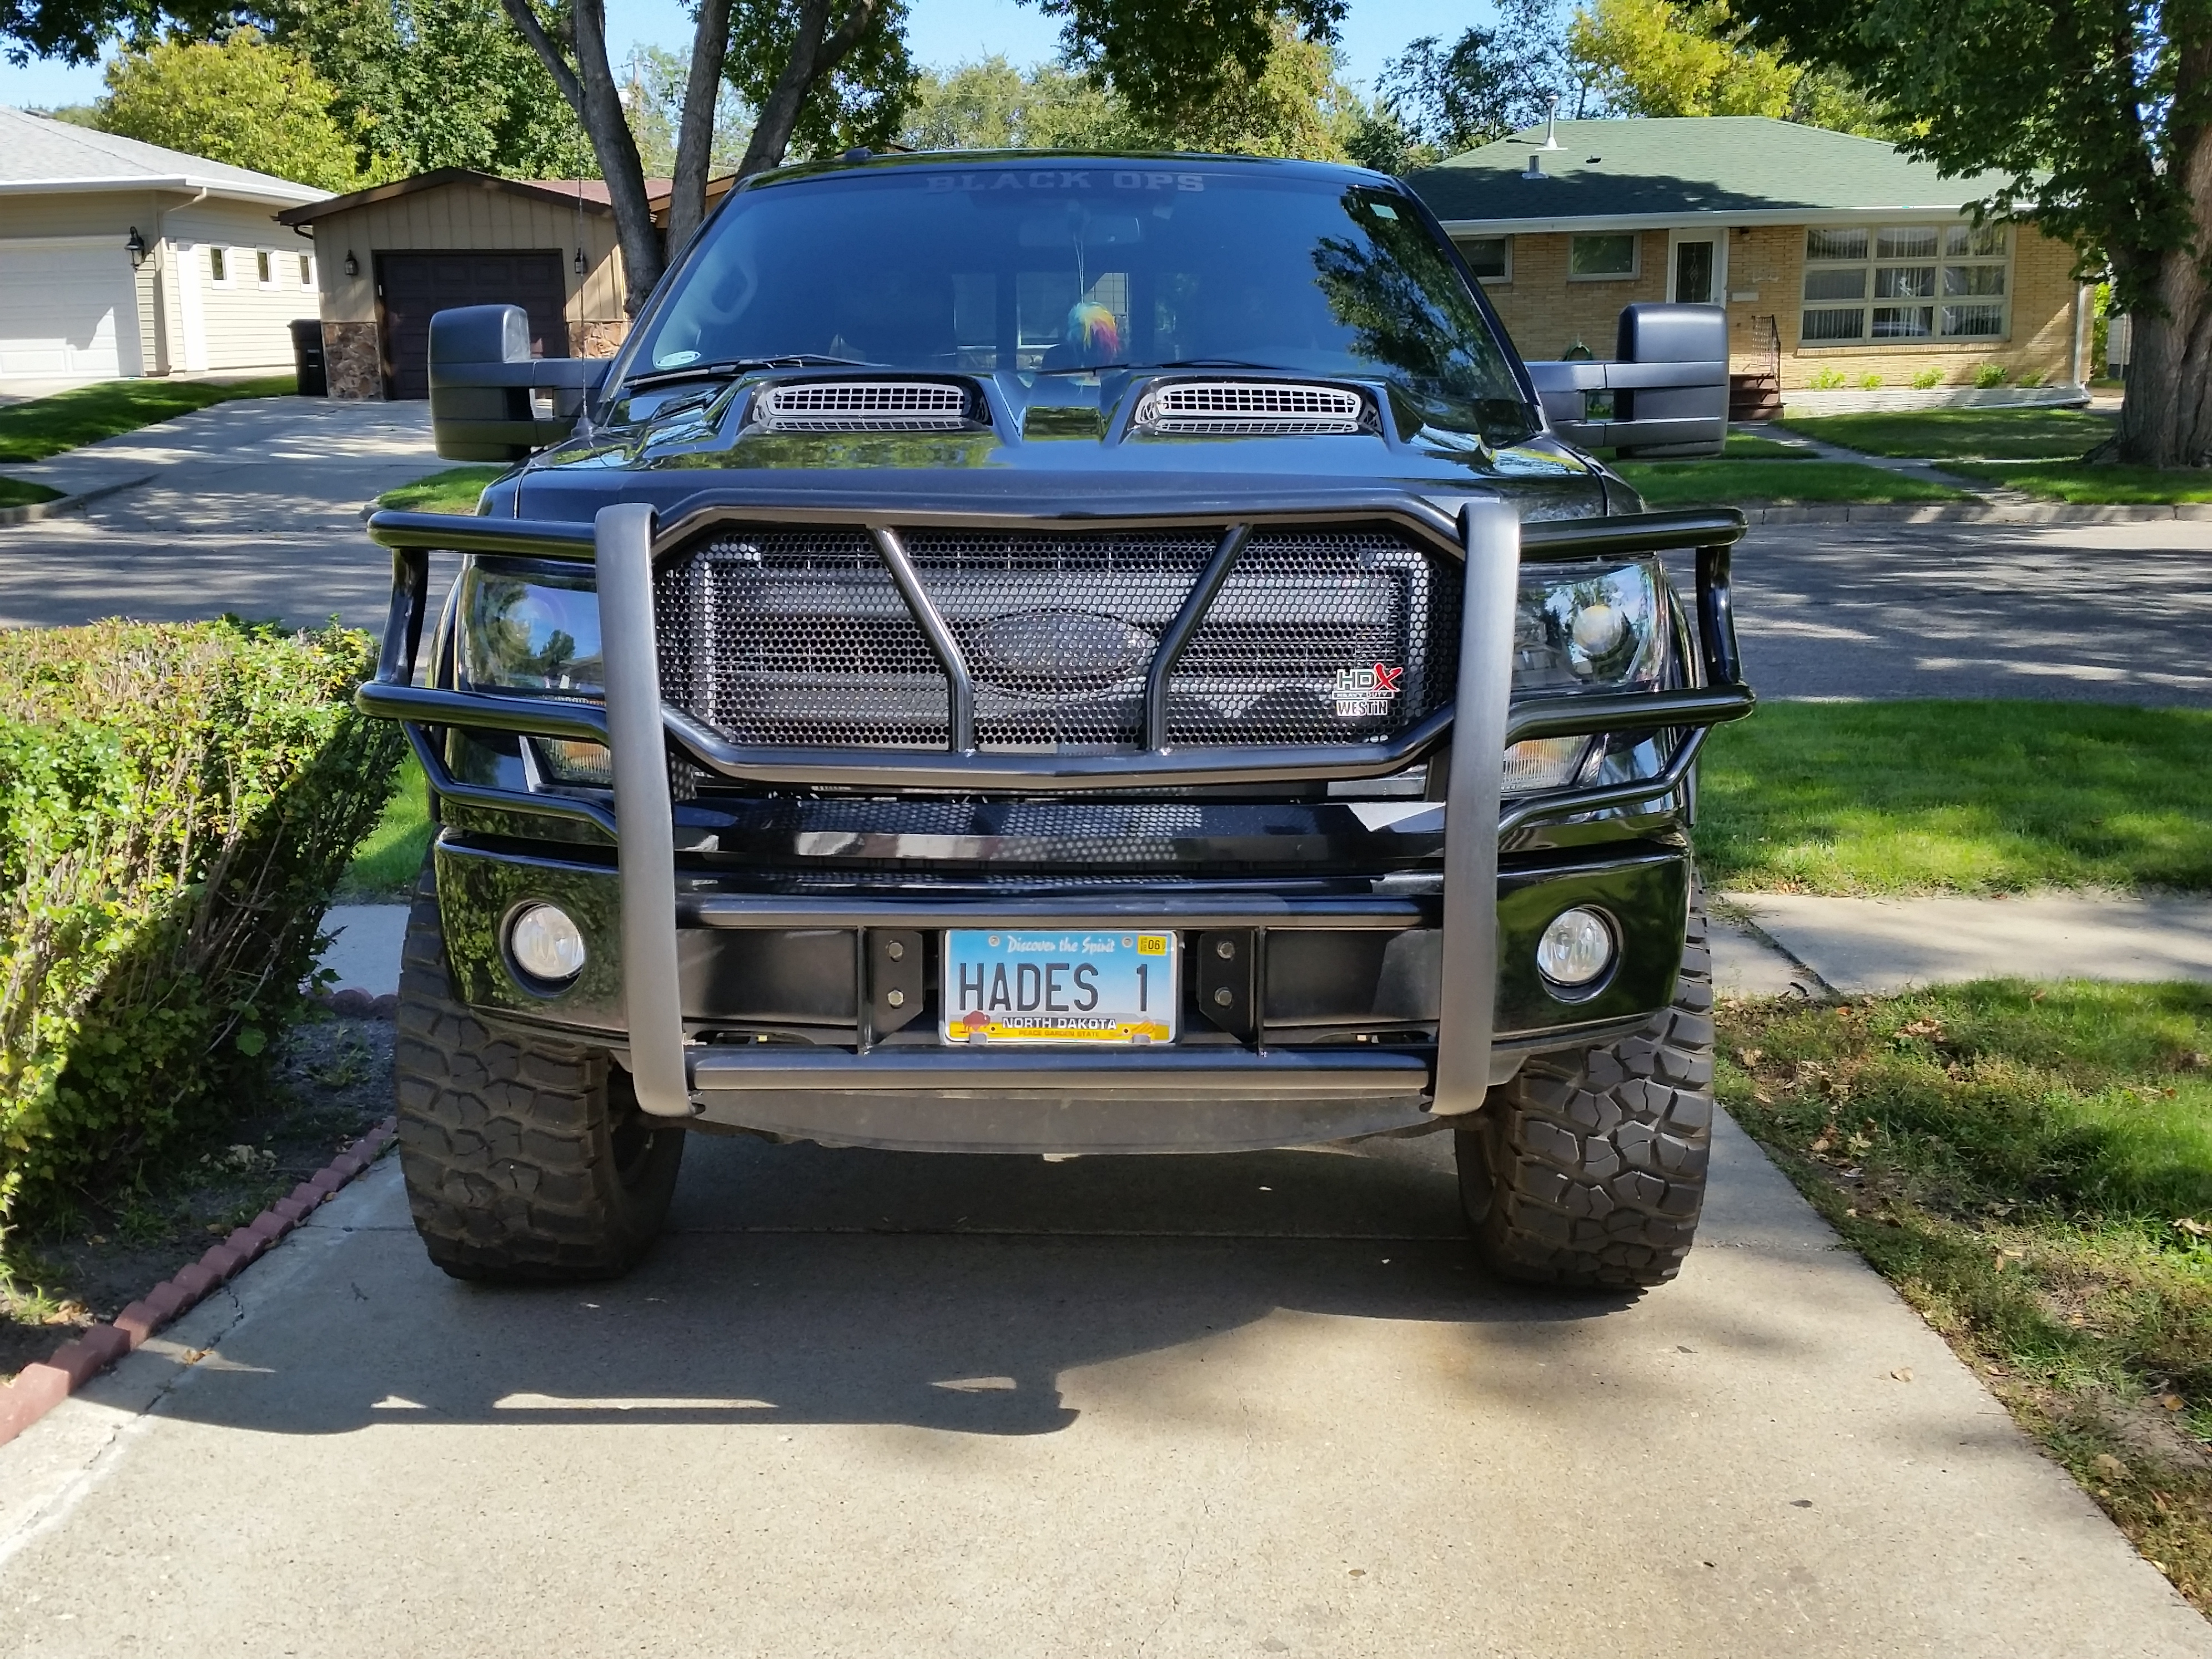 Smittybilt street light bar rigid dually pictures page 2 name my truckg views 14307 size 428 mb aloadofball Choice Image